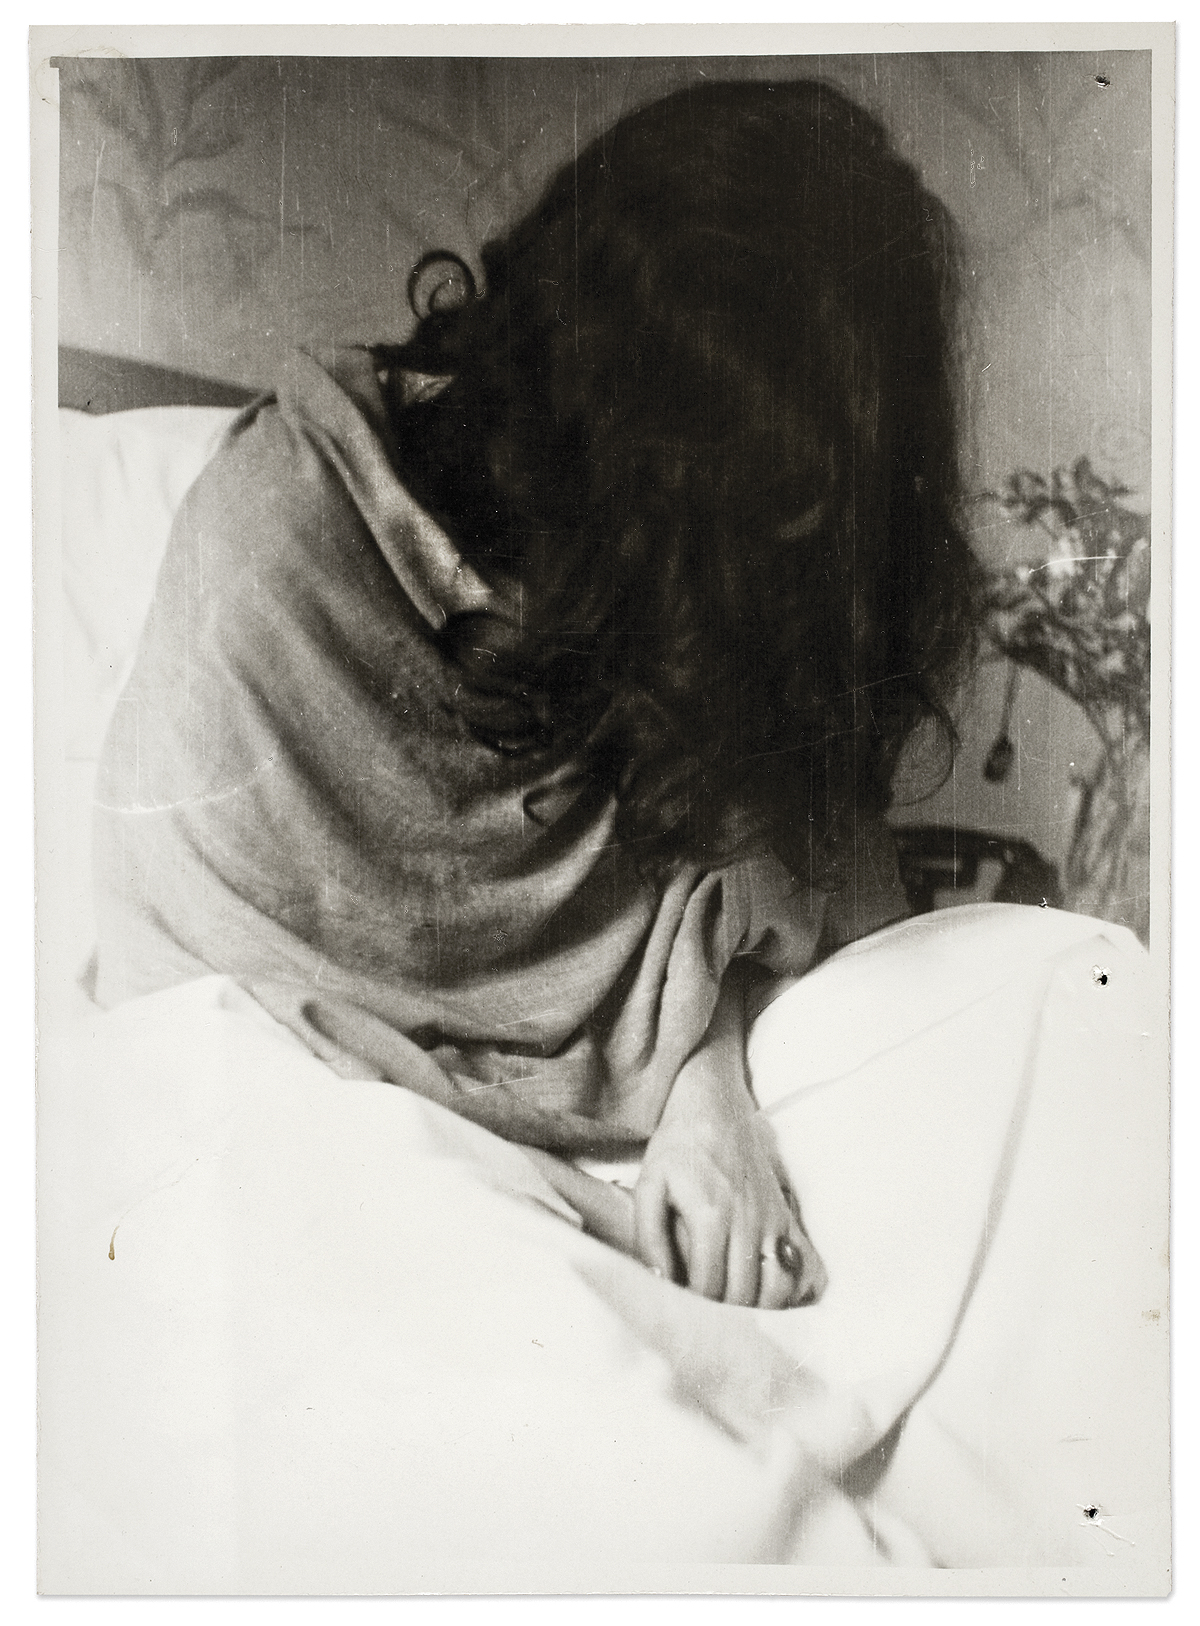 Frida  no  hospital  de  Nova  Iorque,  por  Nickolas  Muray,  1946  ©  Museu  Frida  Kahlo